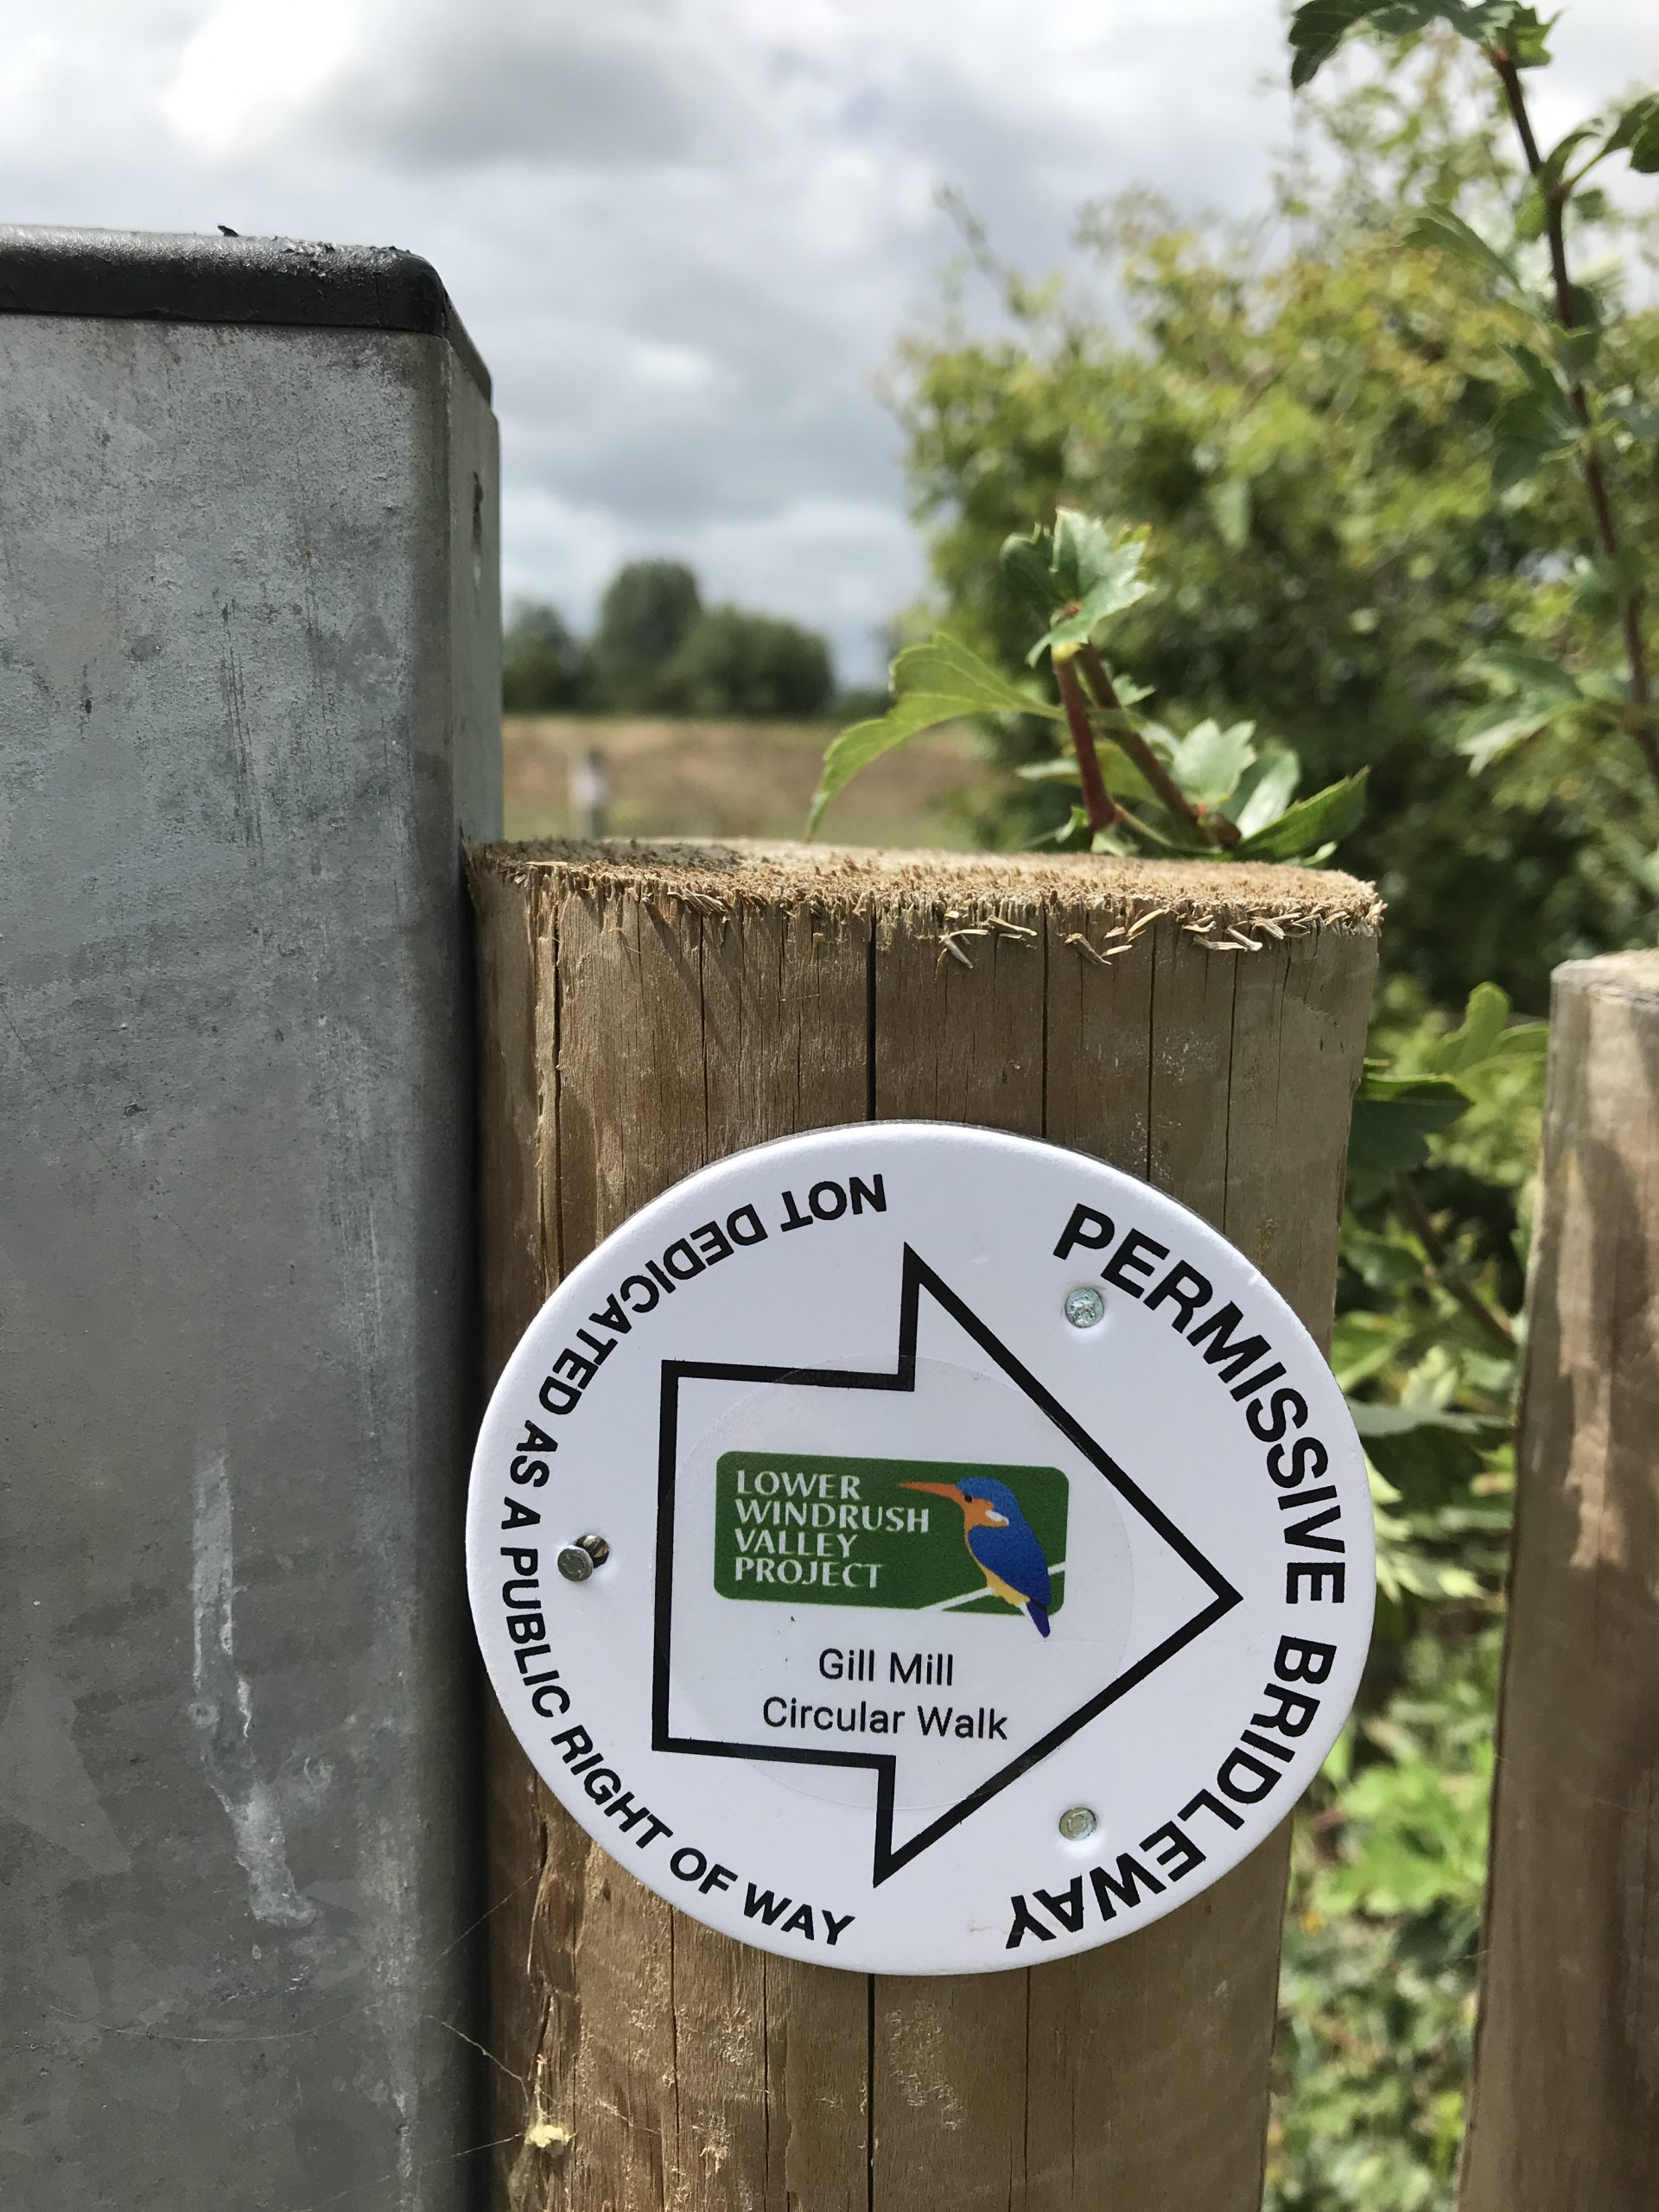 Stickers on waymarkers make it easy for walkers to follow the routes